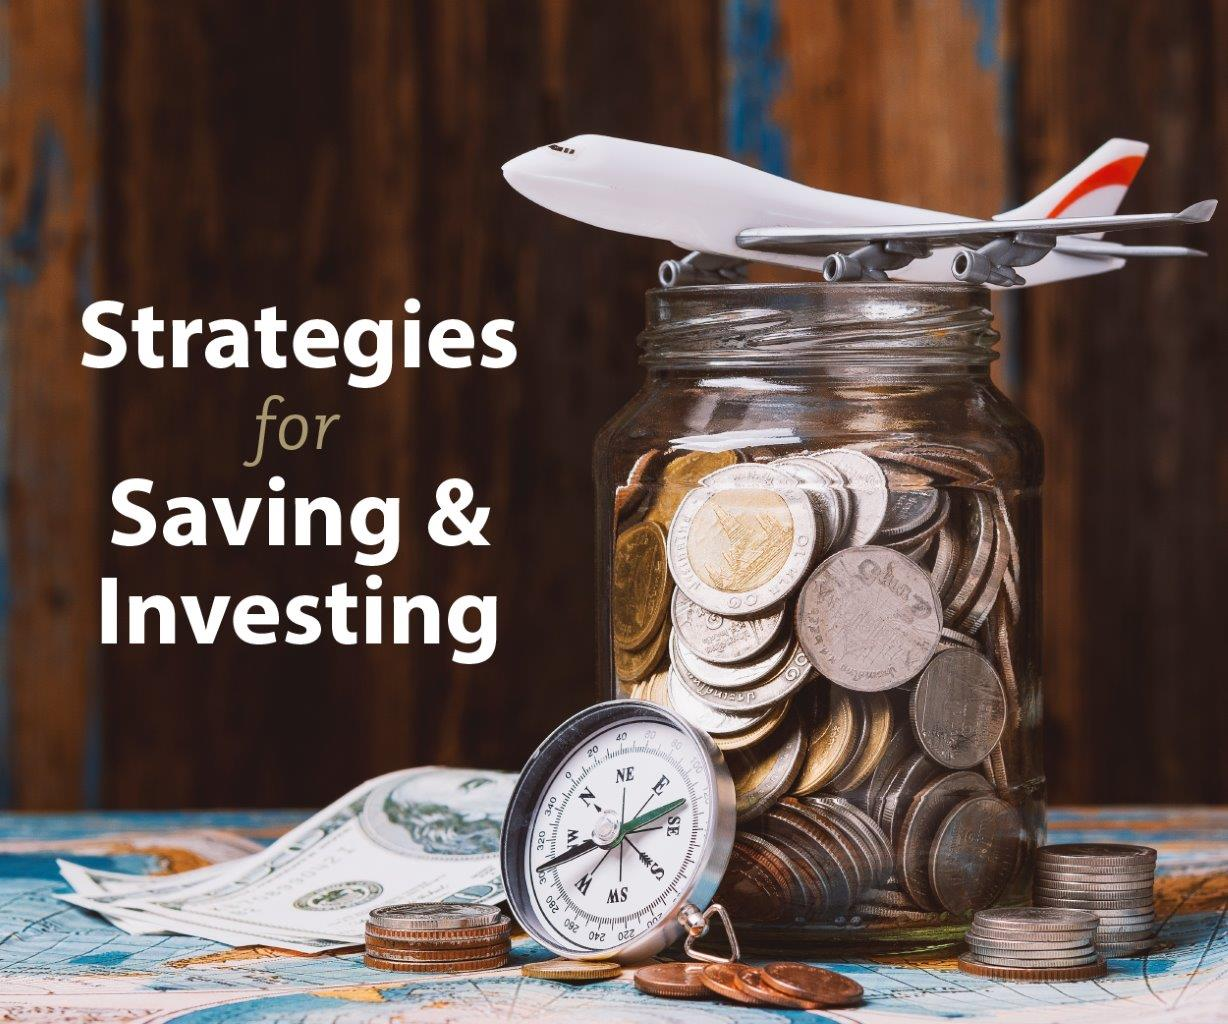 Strategies for Saving & Investing